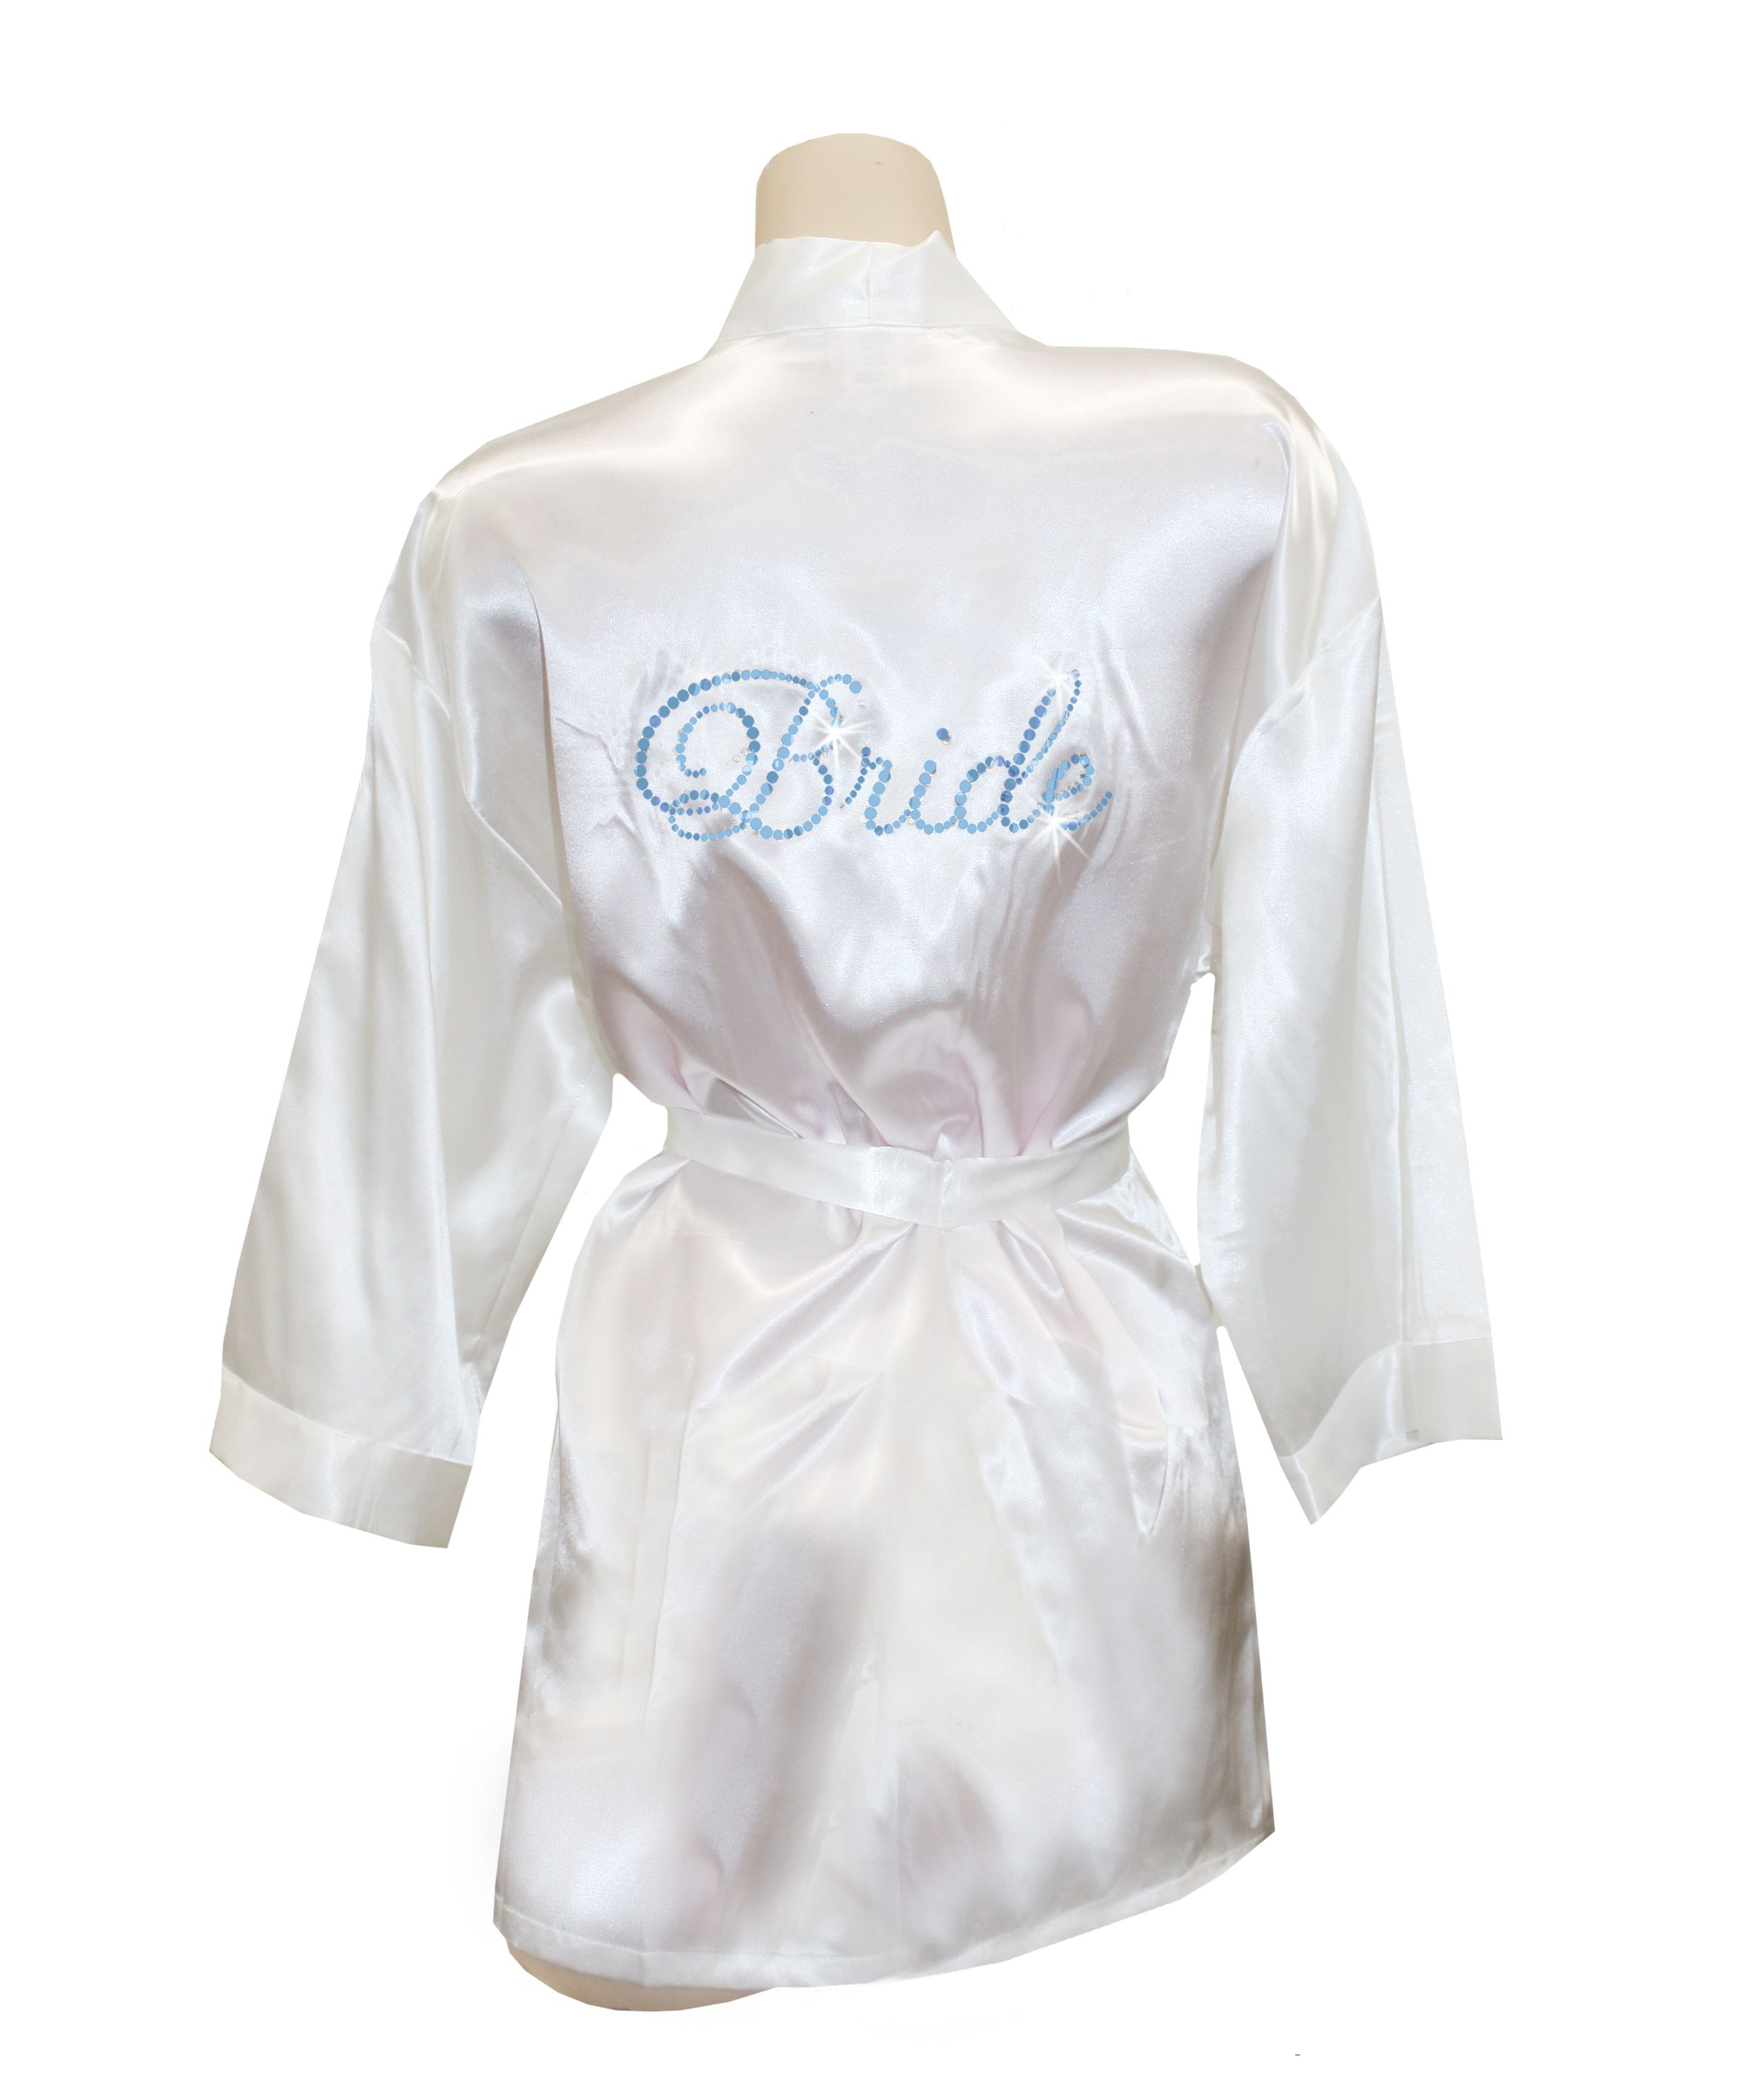 Personalized Embroidered Monogram Satin Robe - Wedding Gifts & Decorations